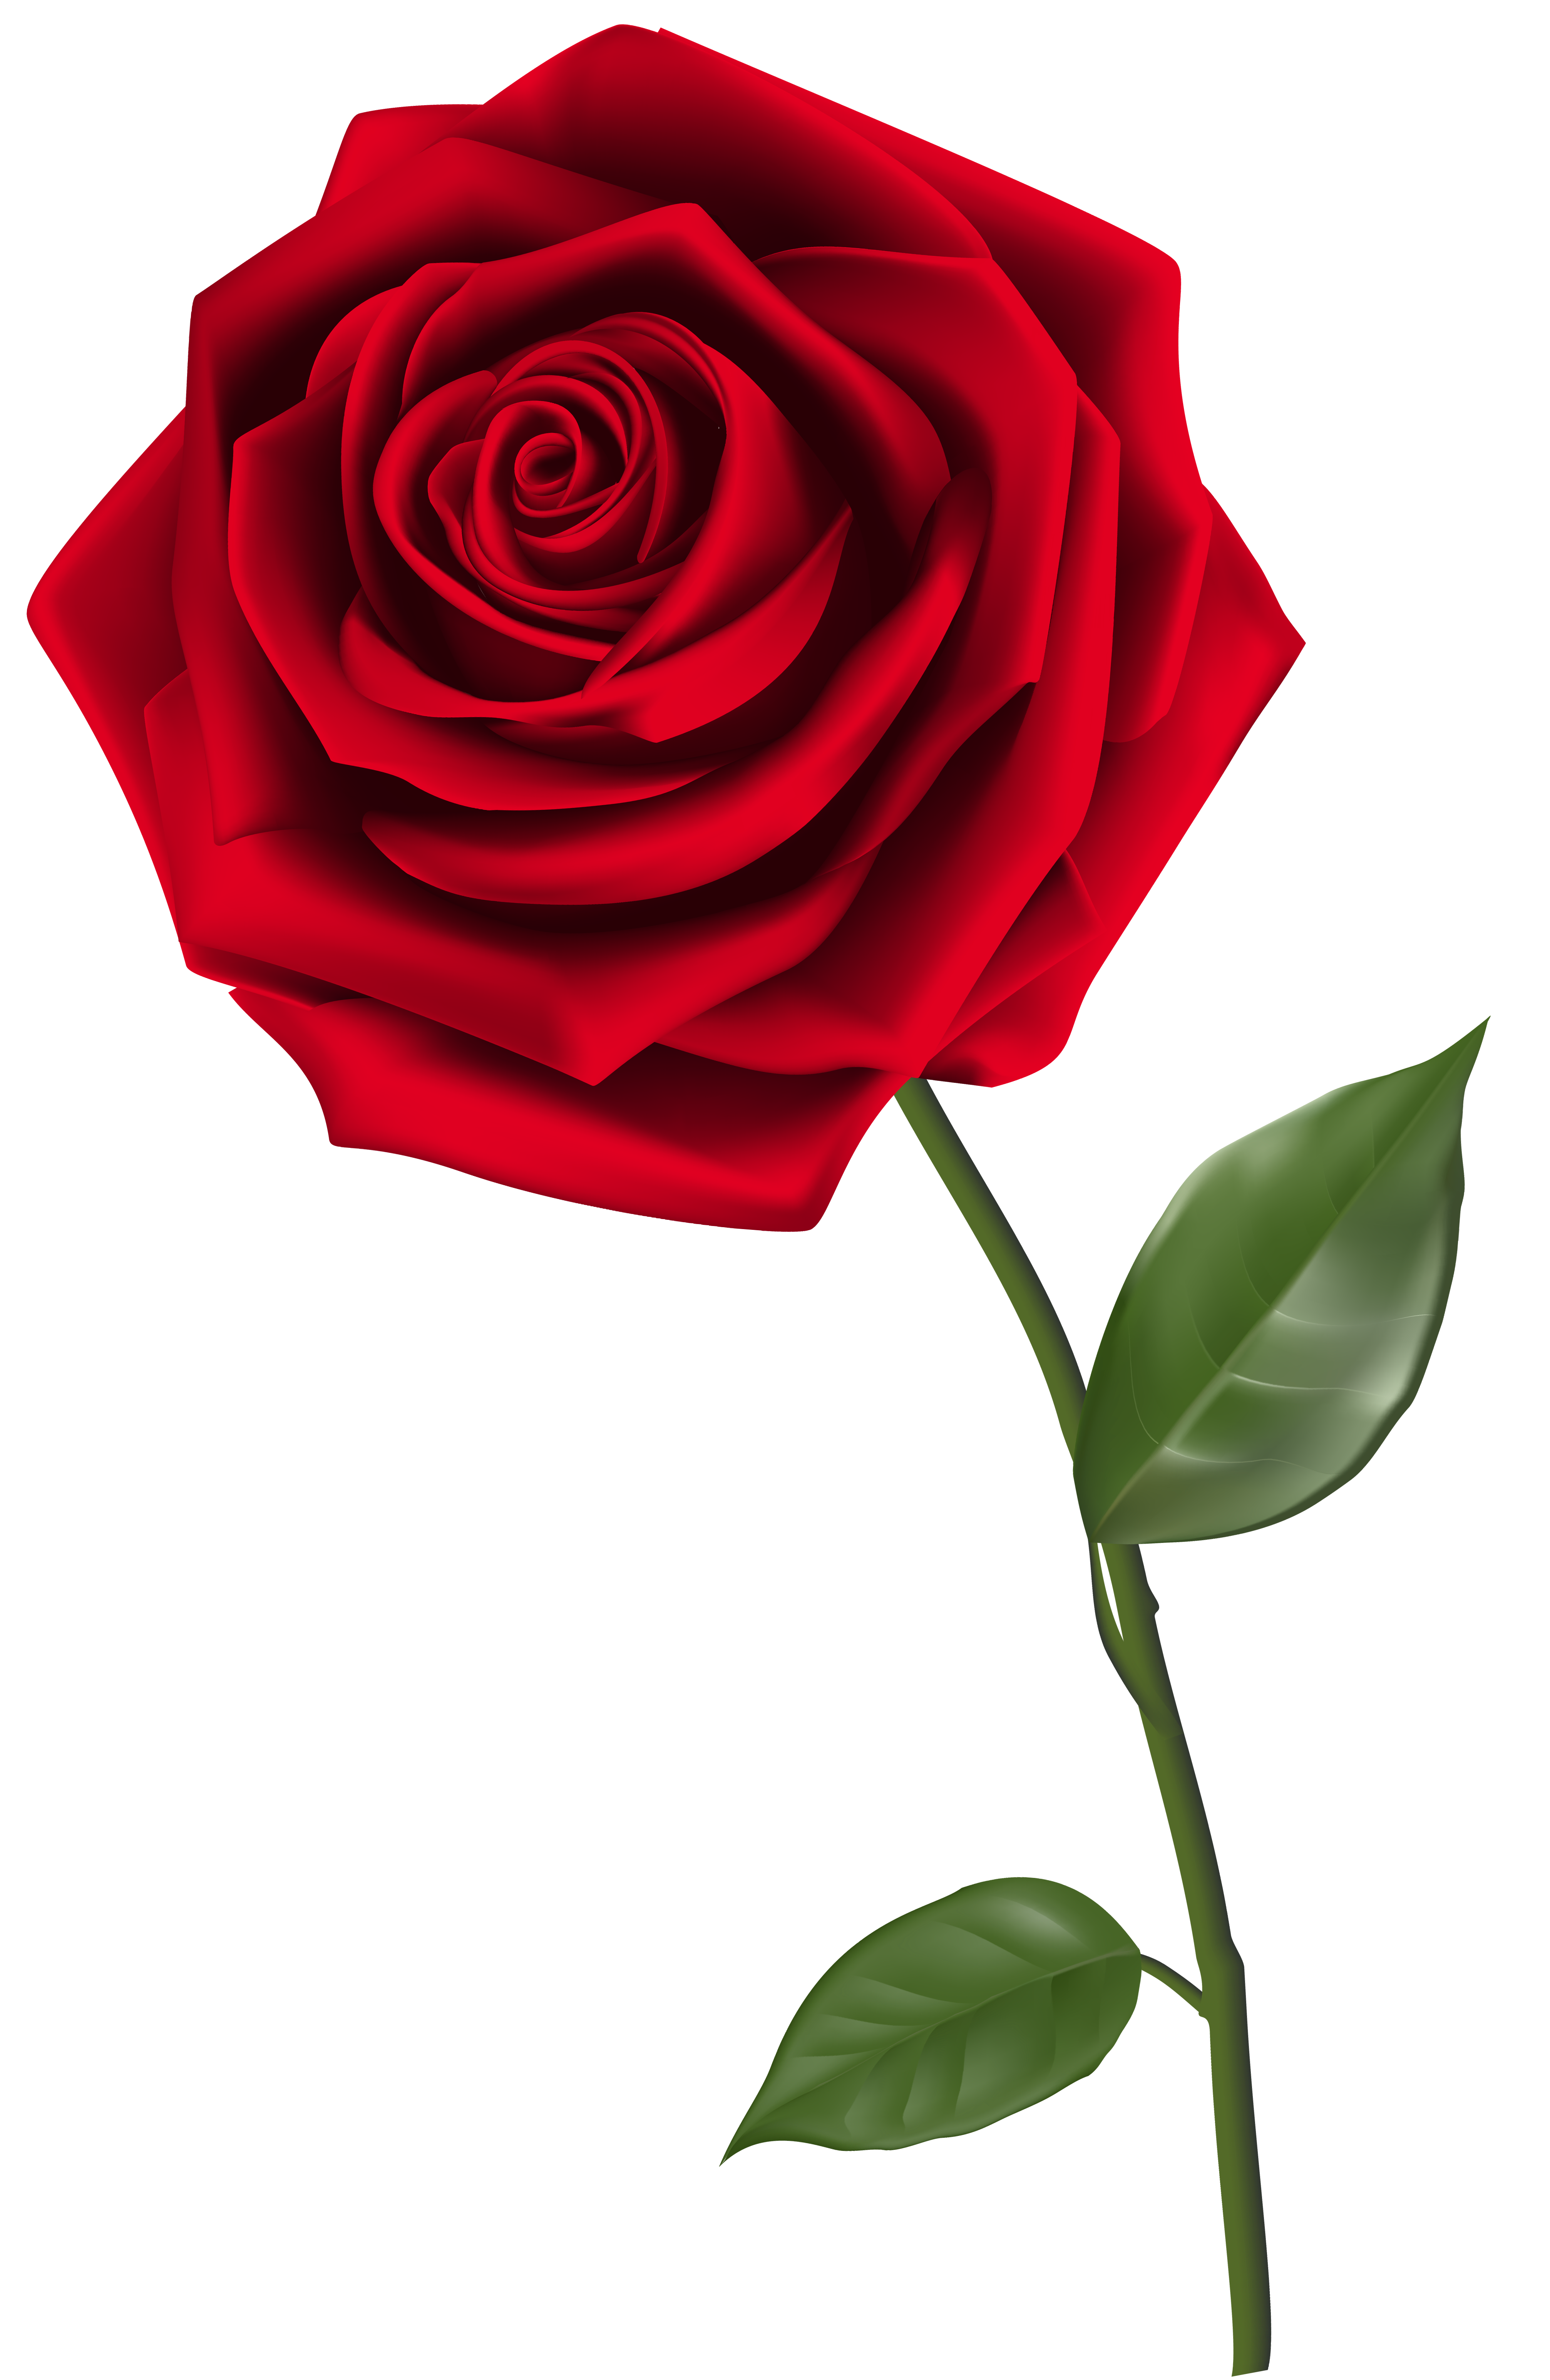 Tiny Rose Png - Pin by Lucky Tusk Co. on Roses | Pinterest | Red roses, Single red rose and  Red rose png